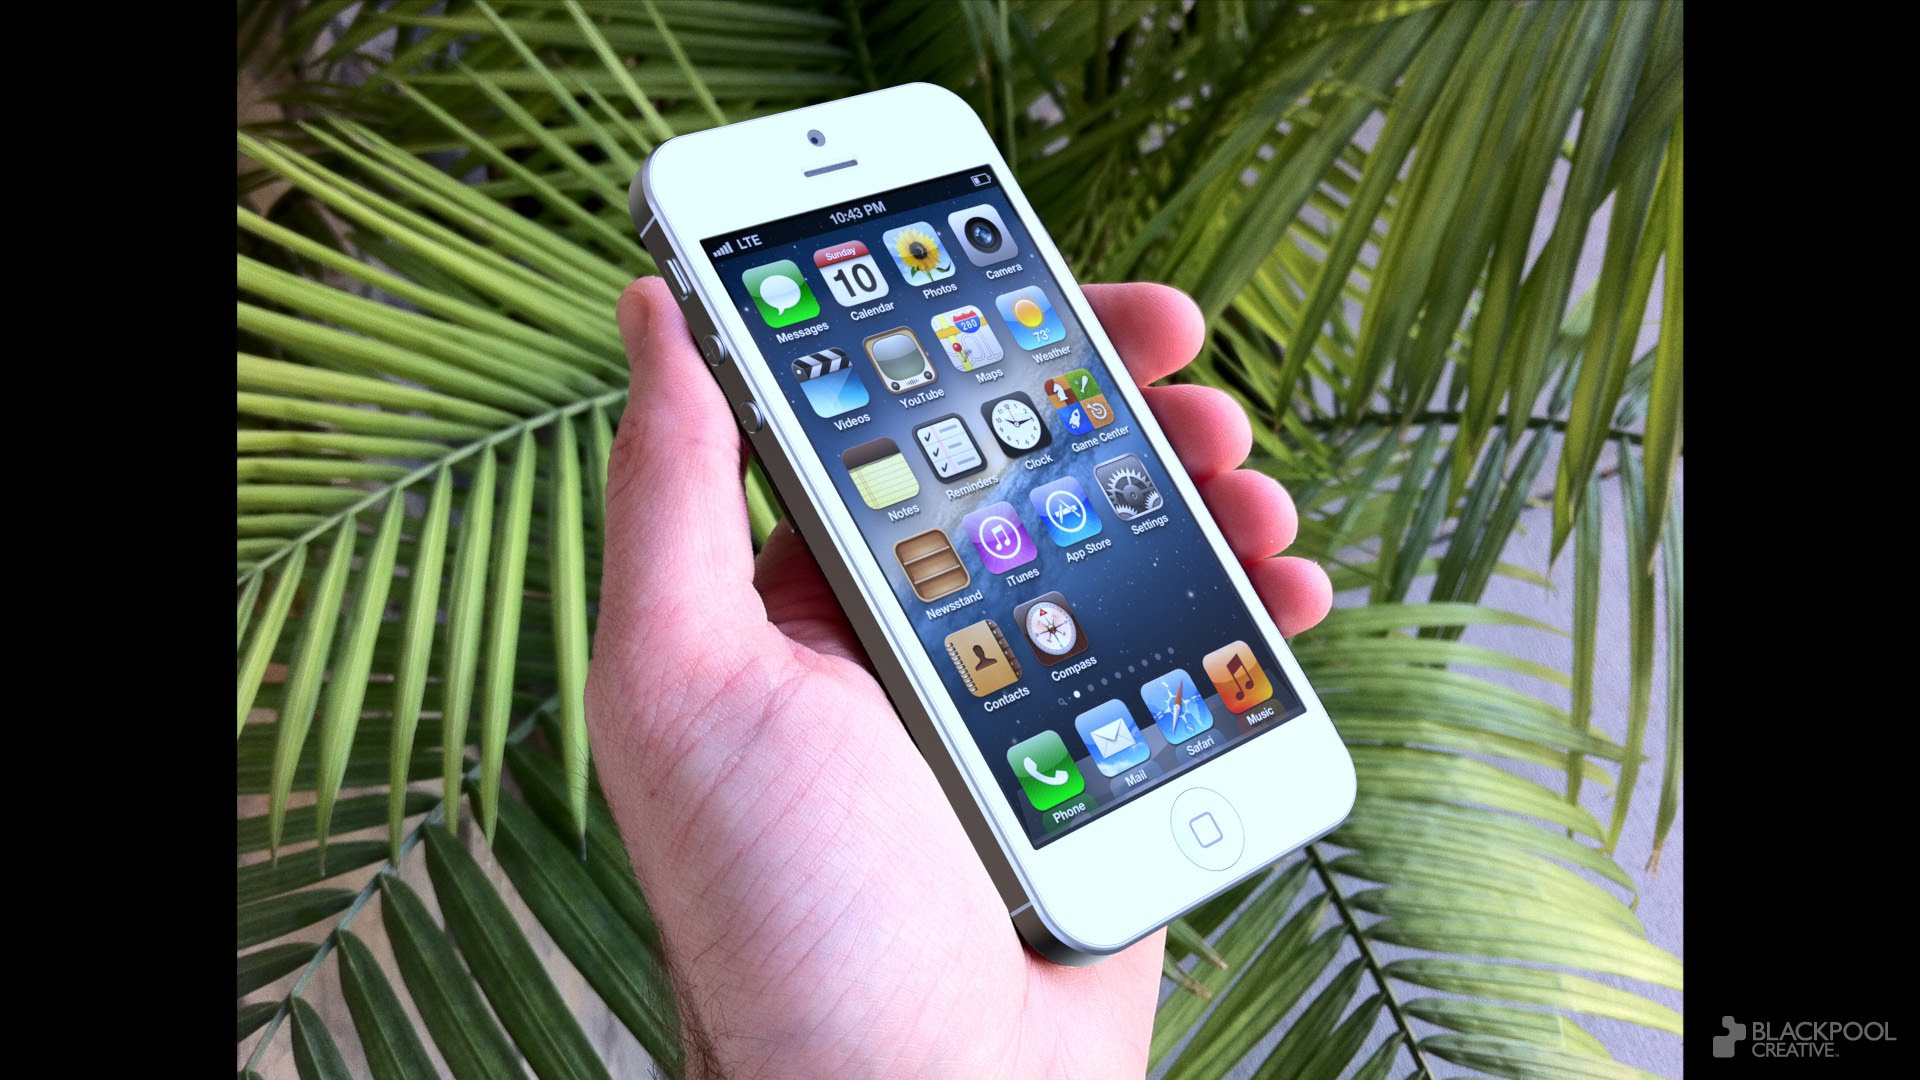 The next-gen iPhone may include support for faster 4G LTE networks.